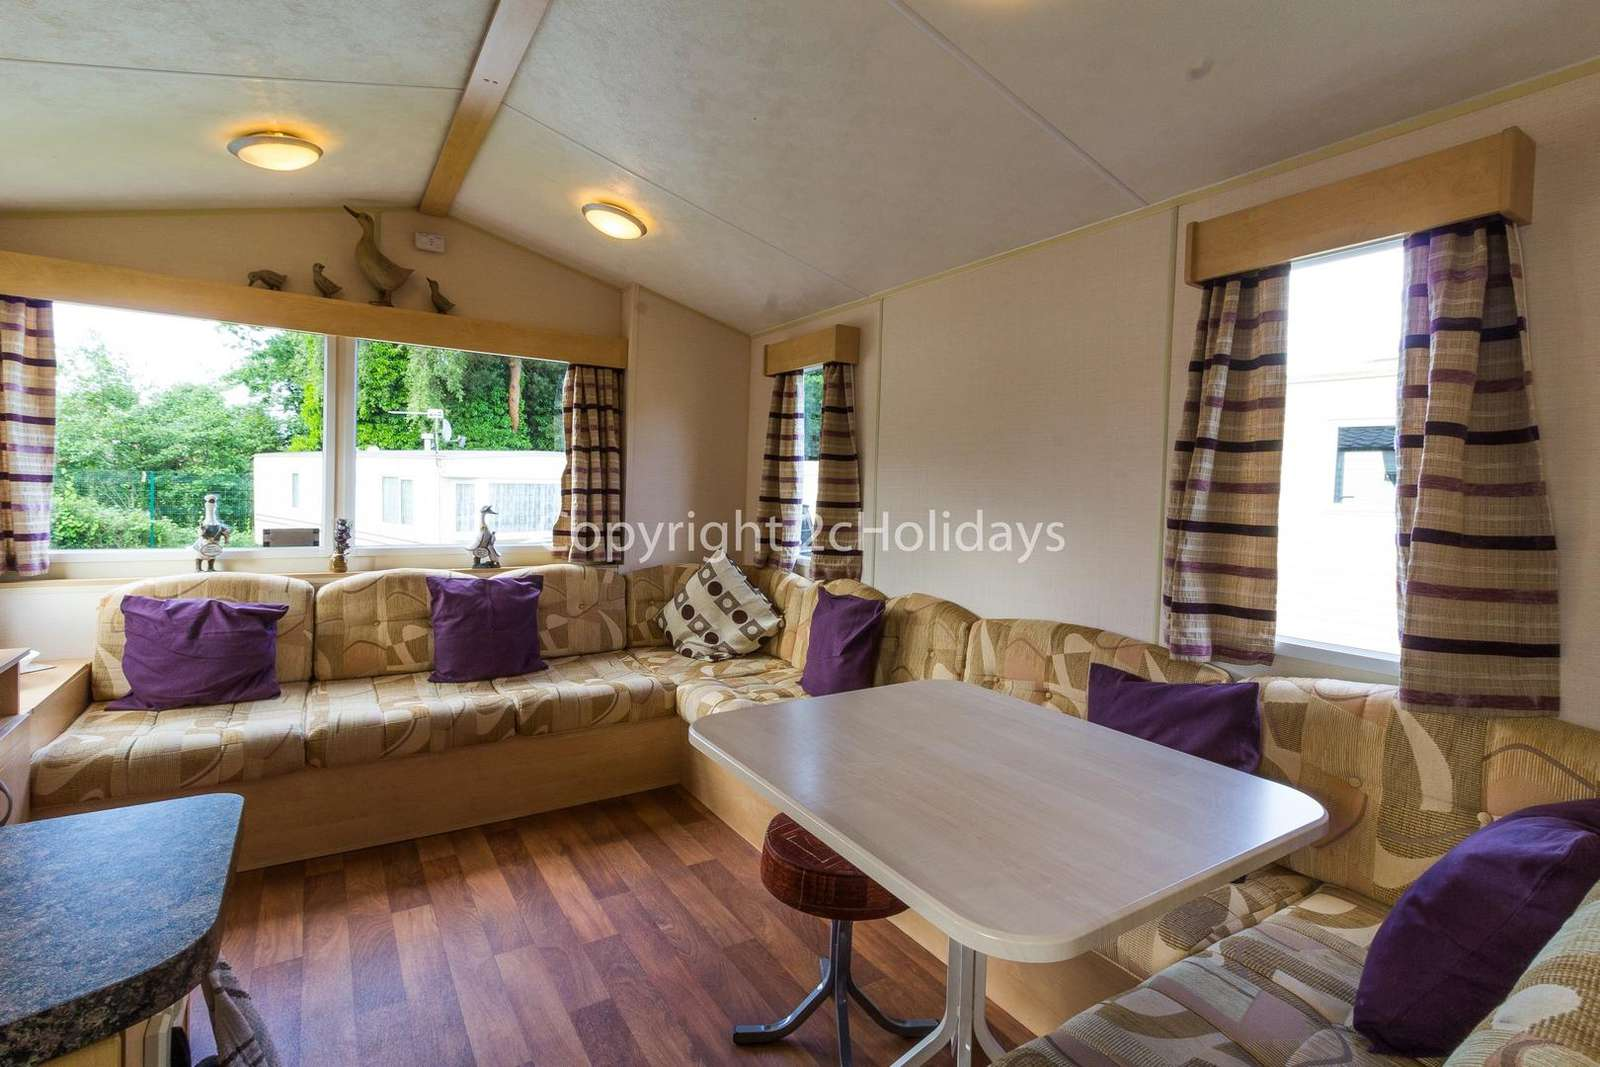 Open plan living/dining areas, perfect for families